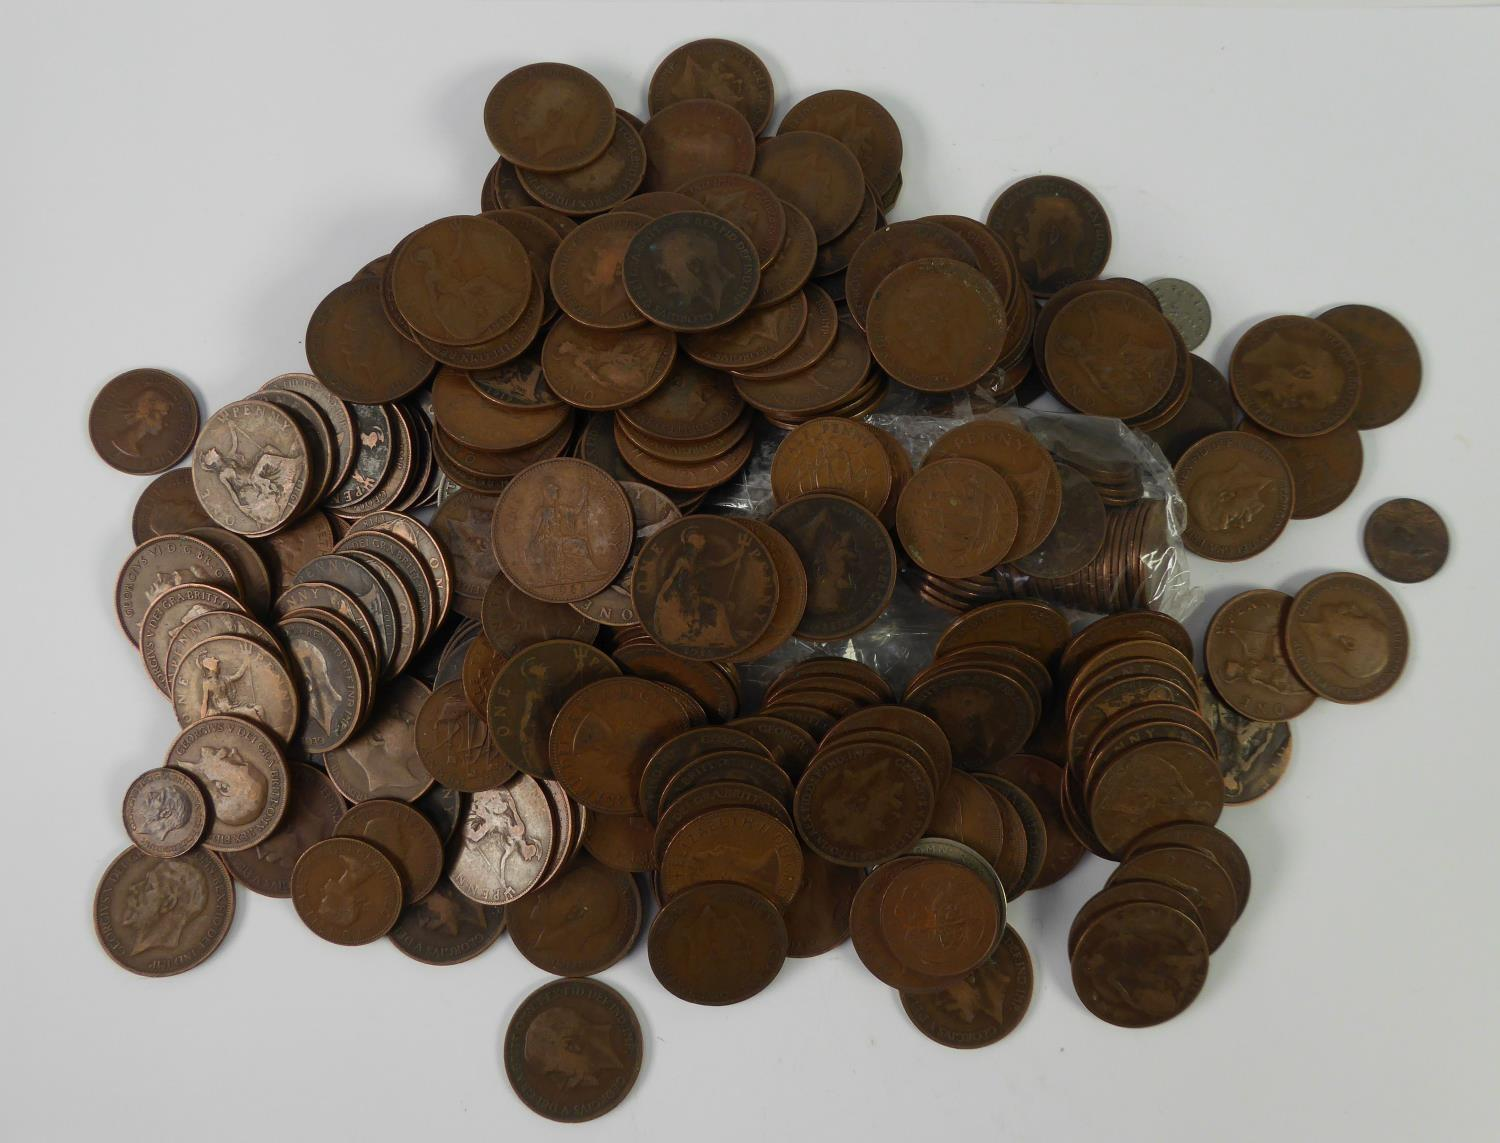 Lot 62 - QUANTITY OF BRITISH PRE-DECIMAL COPPER PENNIES AND HALF PENNIES, mainly early 20th Century plus